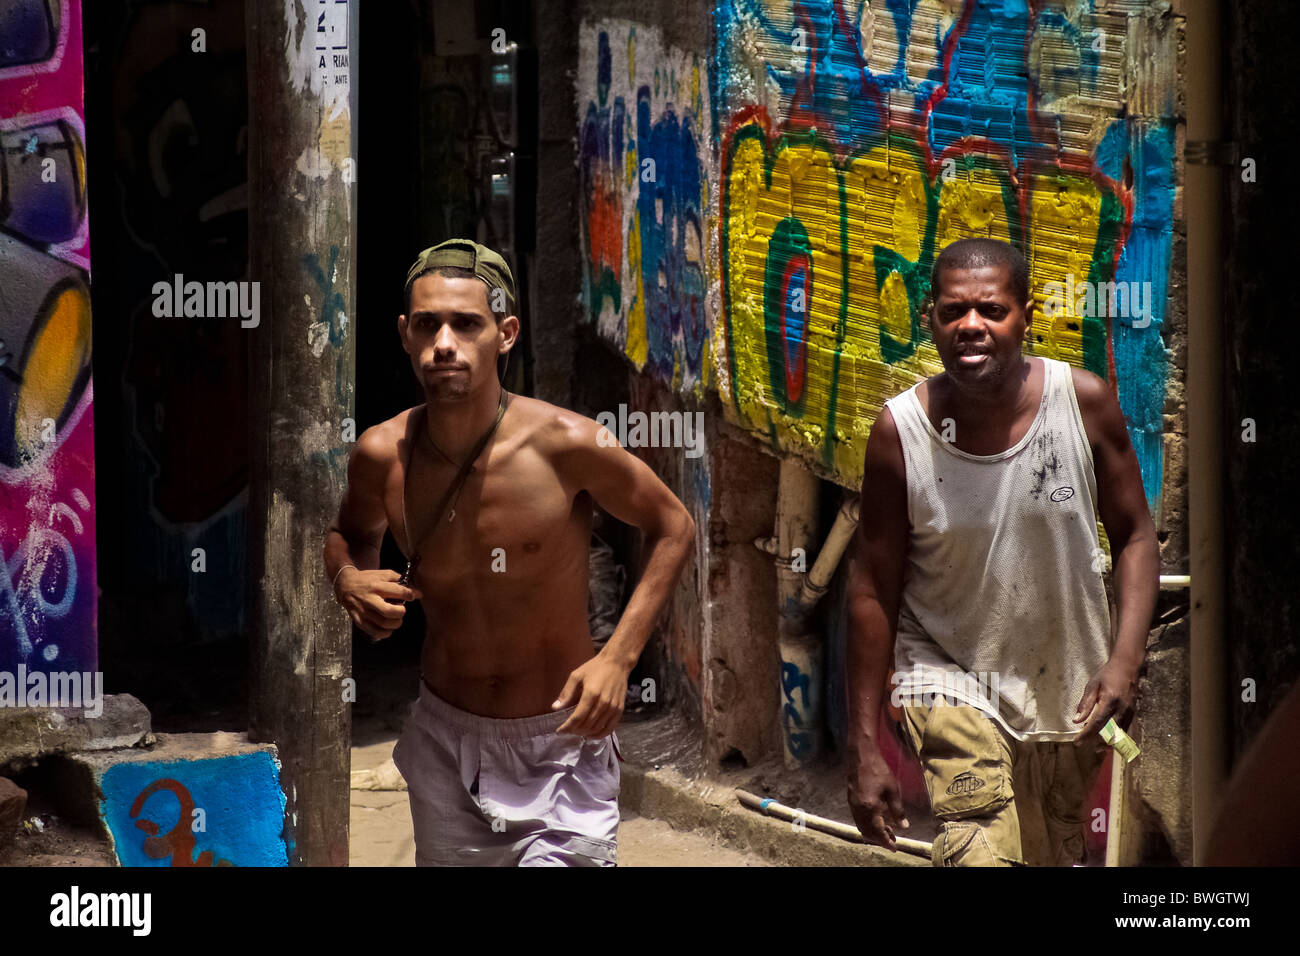 Brazilian men walk in front of the wall covered by graffiti in Rocinha, the largest slum in Rio de Janeiro. - Stock Image